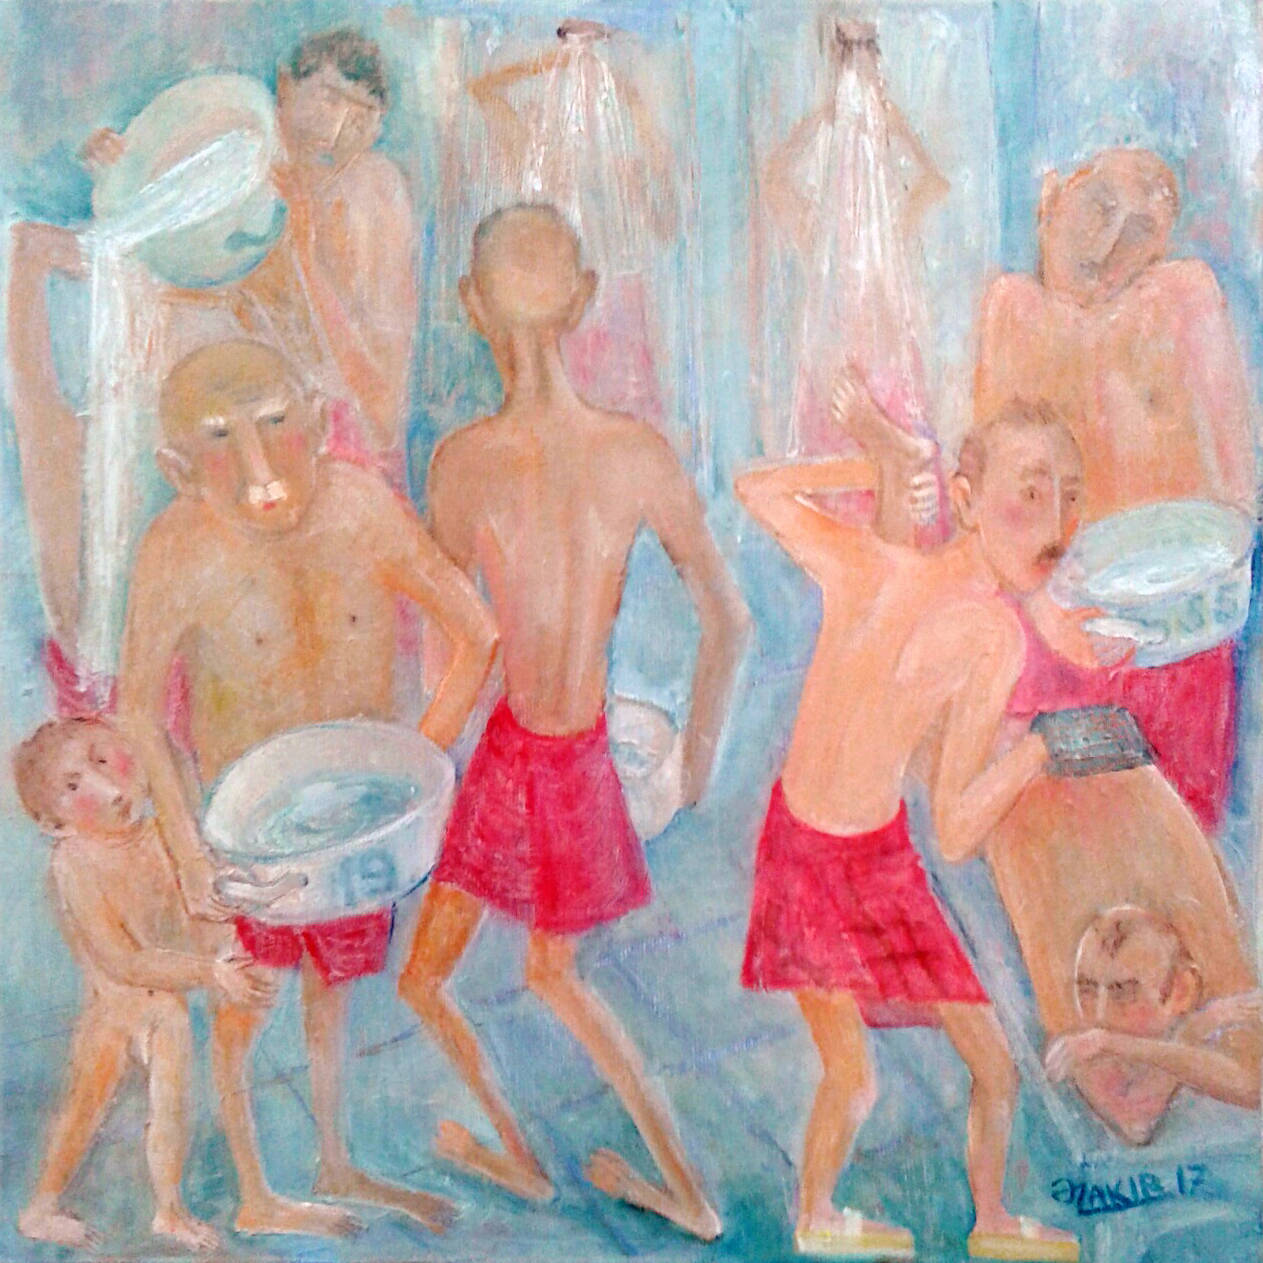 Turkish bath 2017year 40x40cm Original Painting Oil on Canvas2500$